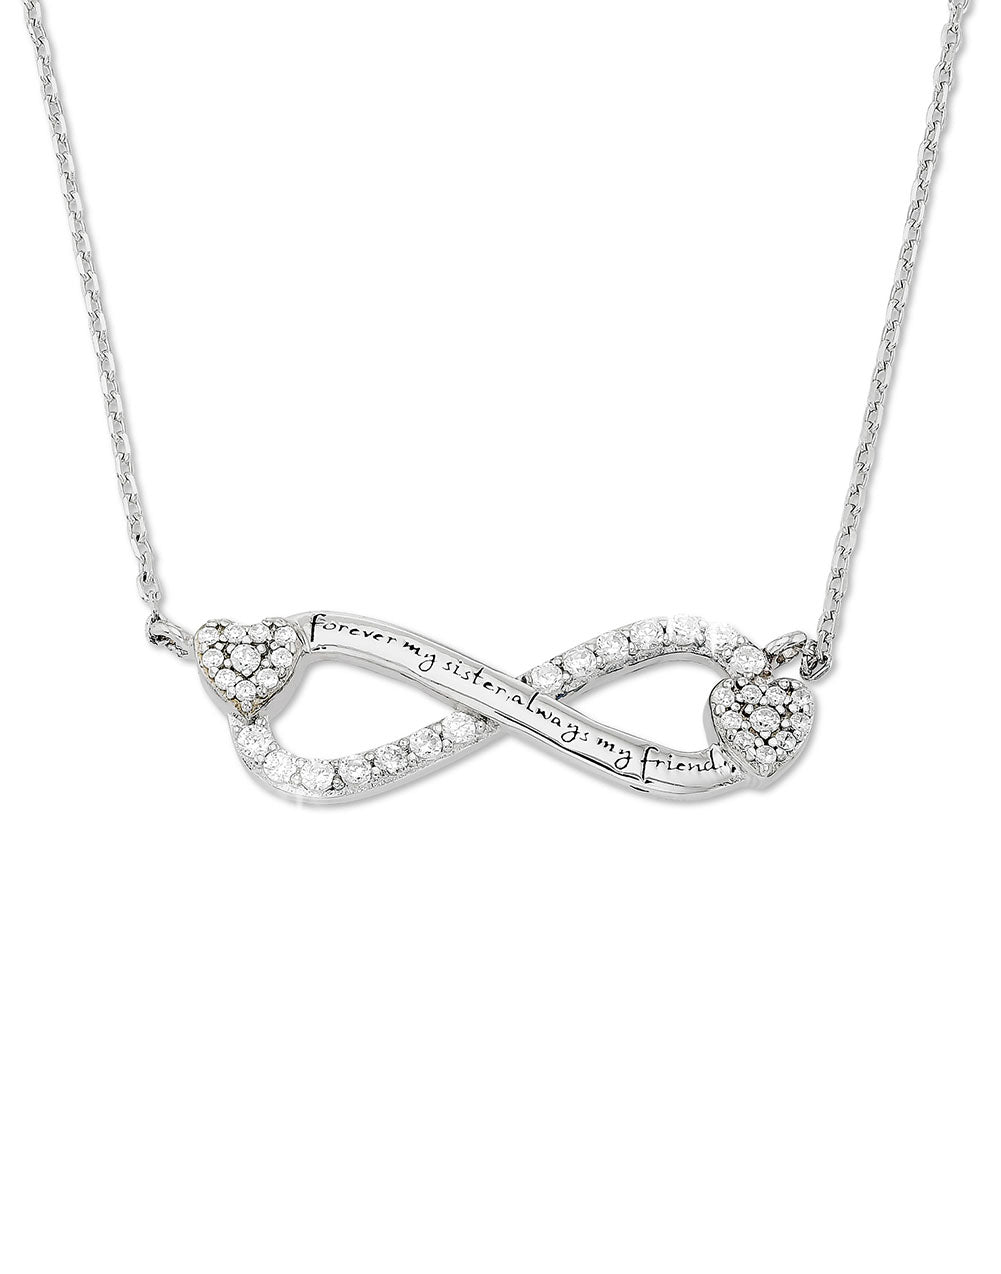 Infinity Zirconia Necklace - Forever My Sister Always My Friend - Gift for Sister and Bff